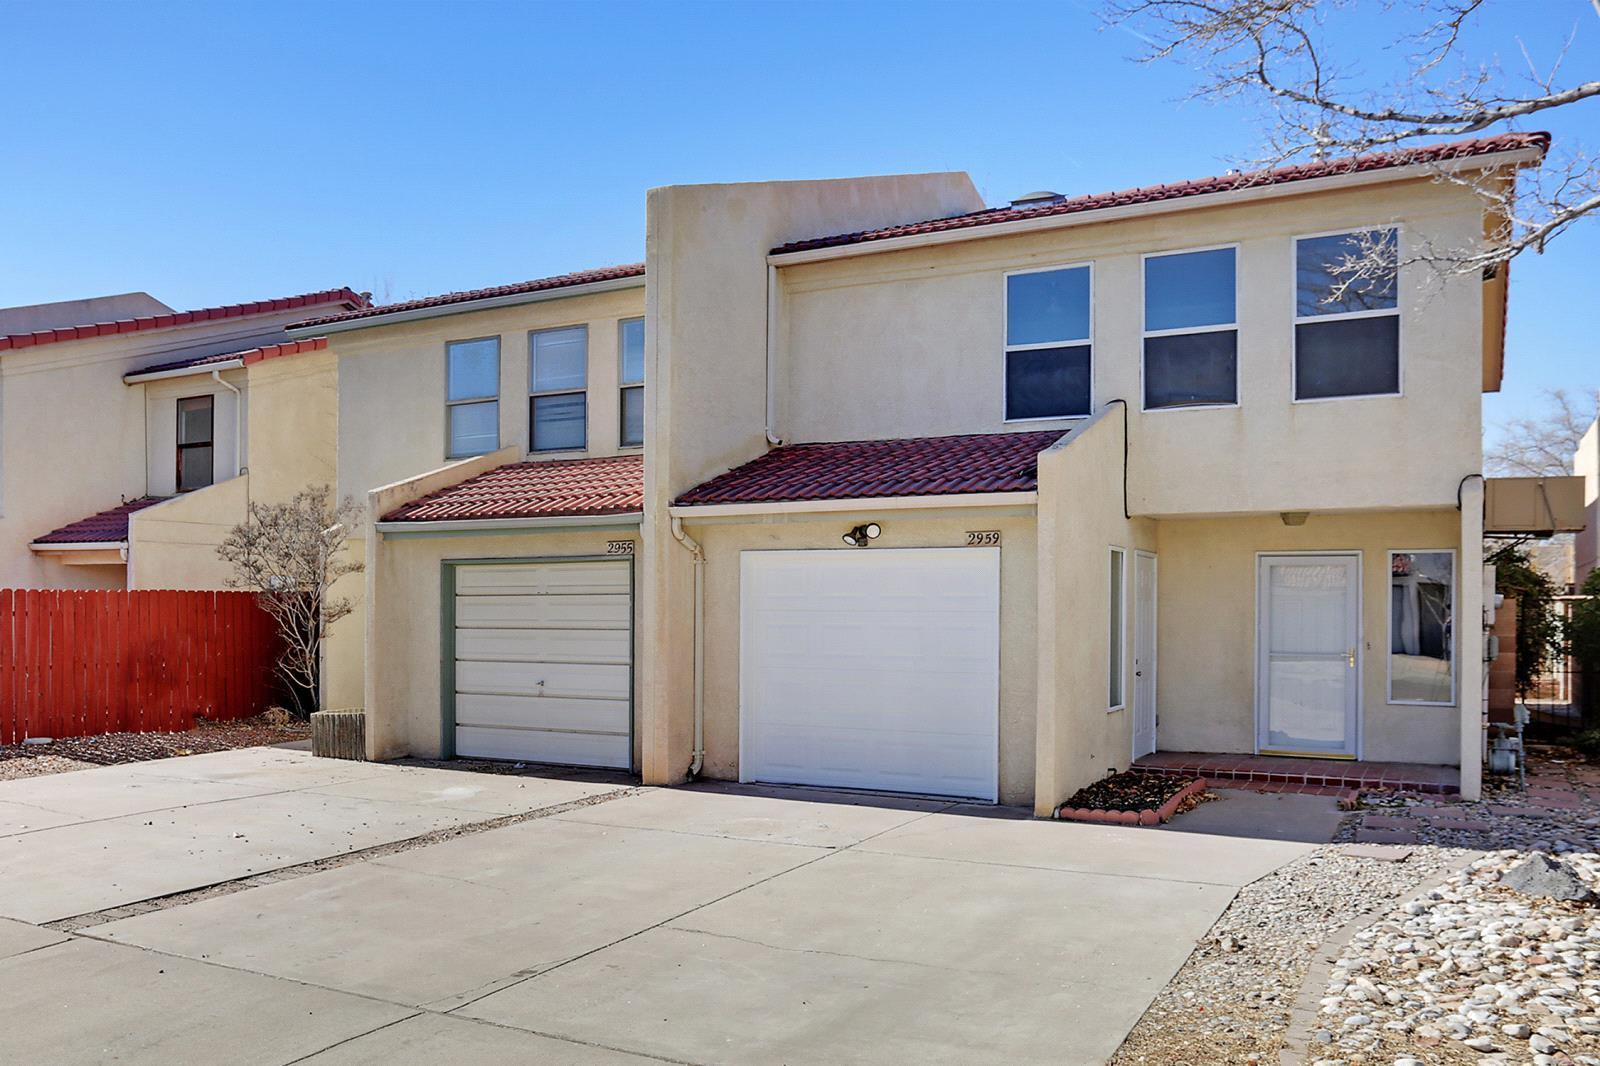 2959 NW Bright Star Drive, Northwest Albuquerque and Northwest Heights, New Mexico